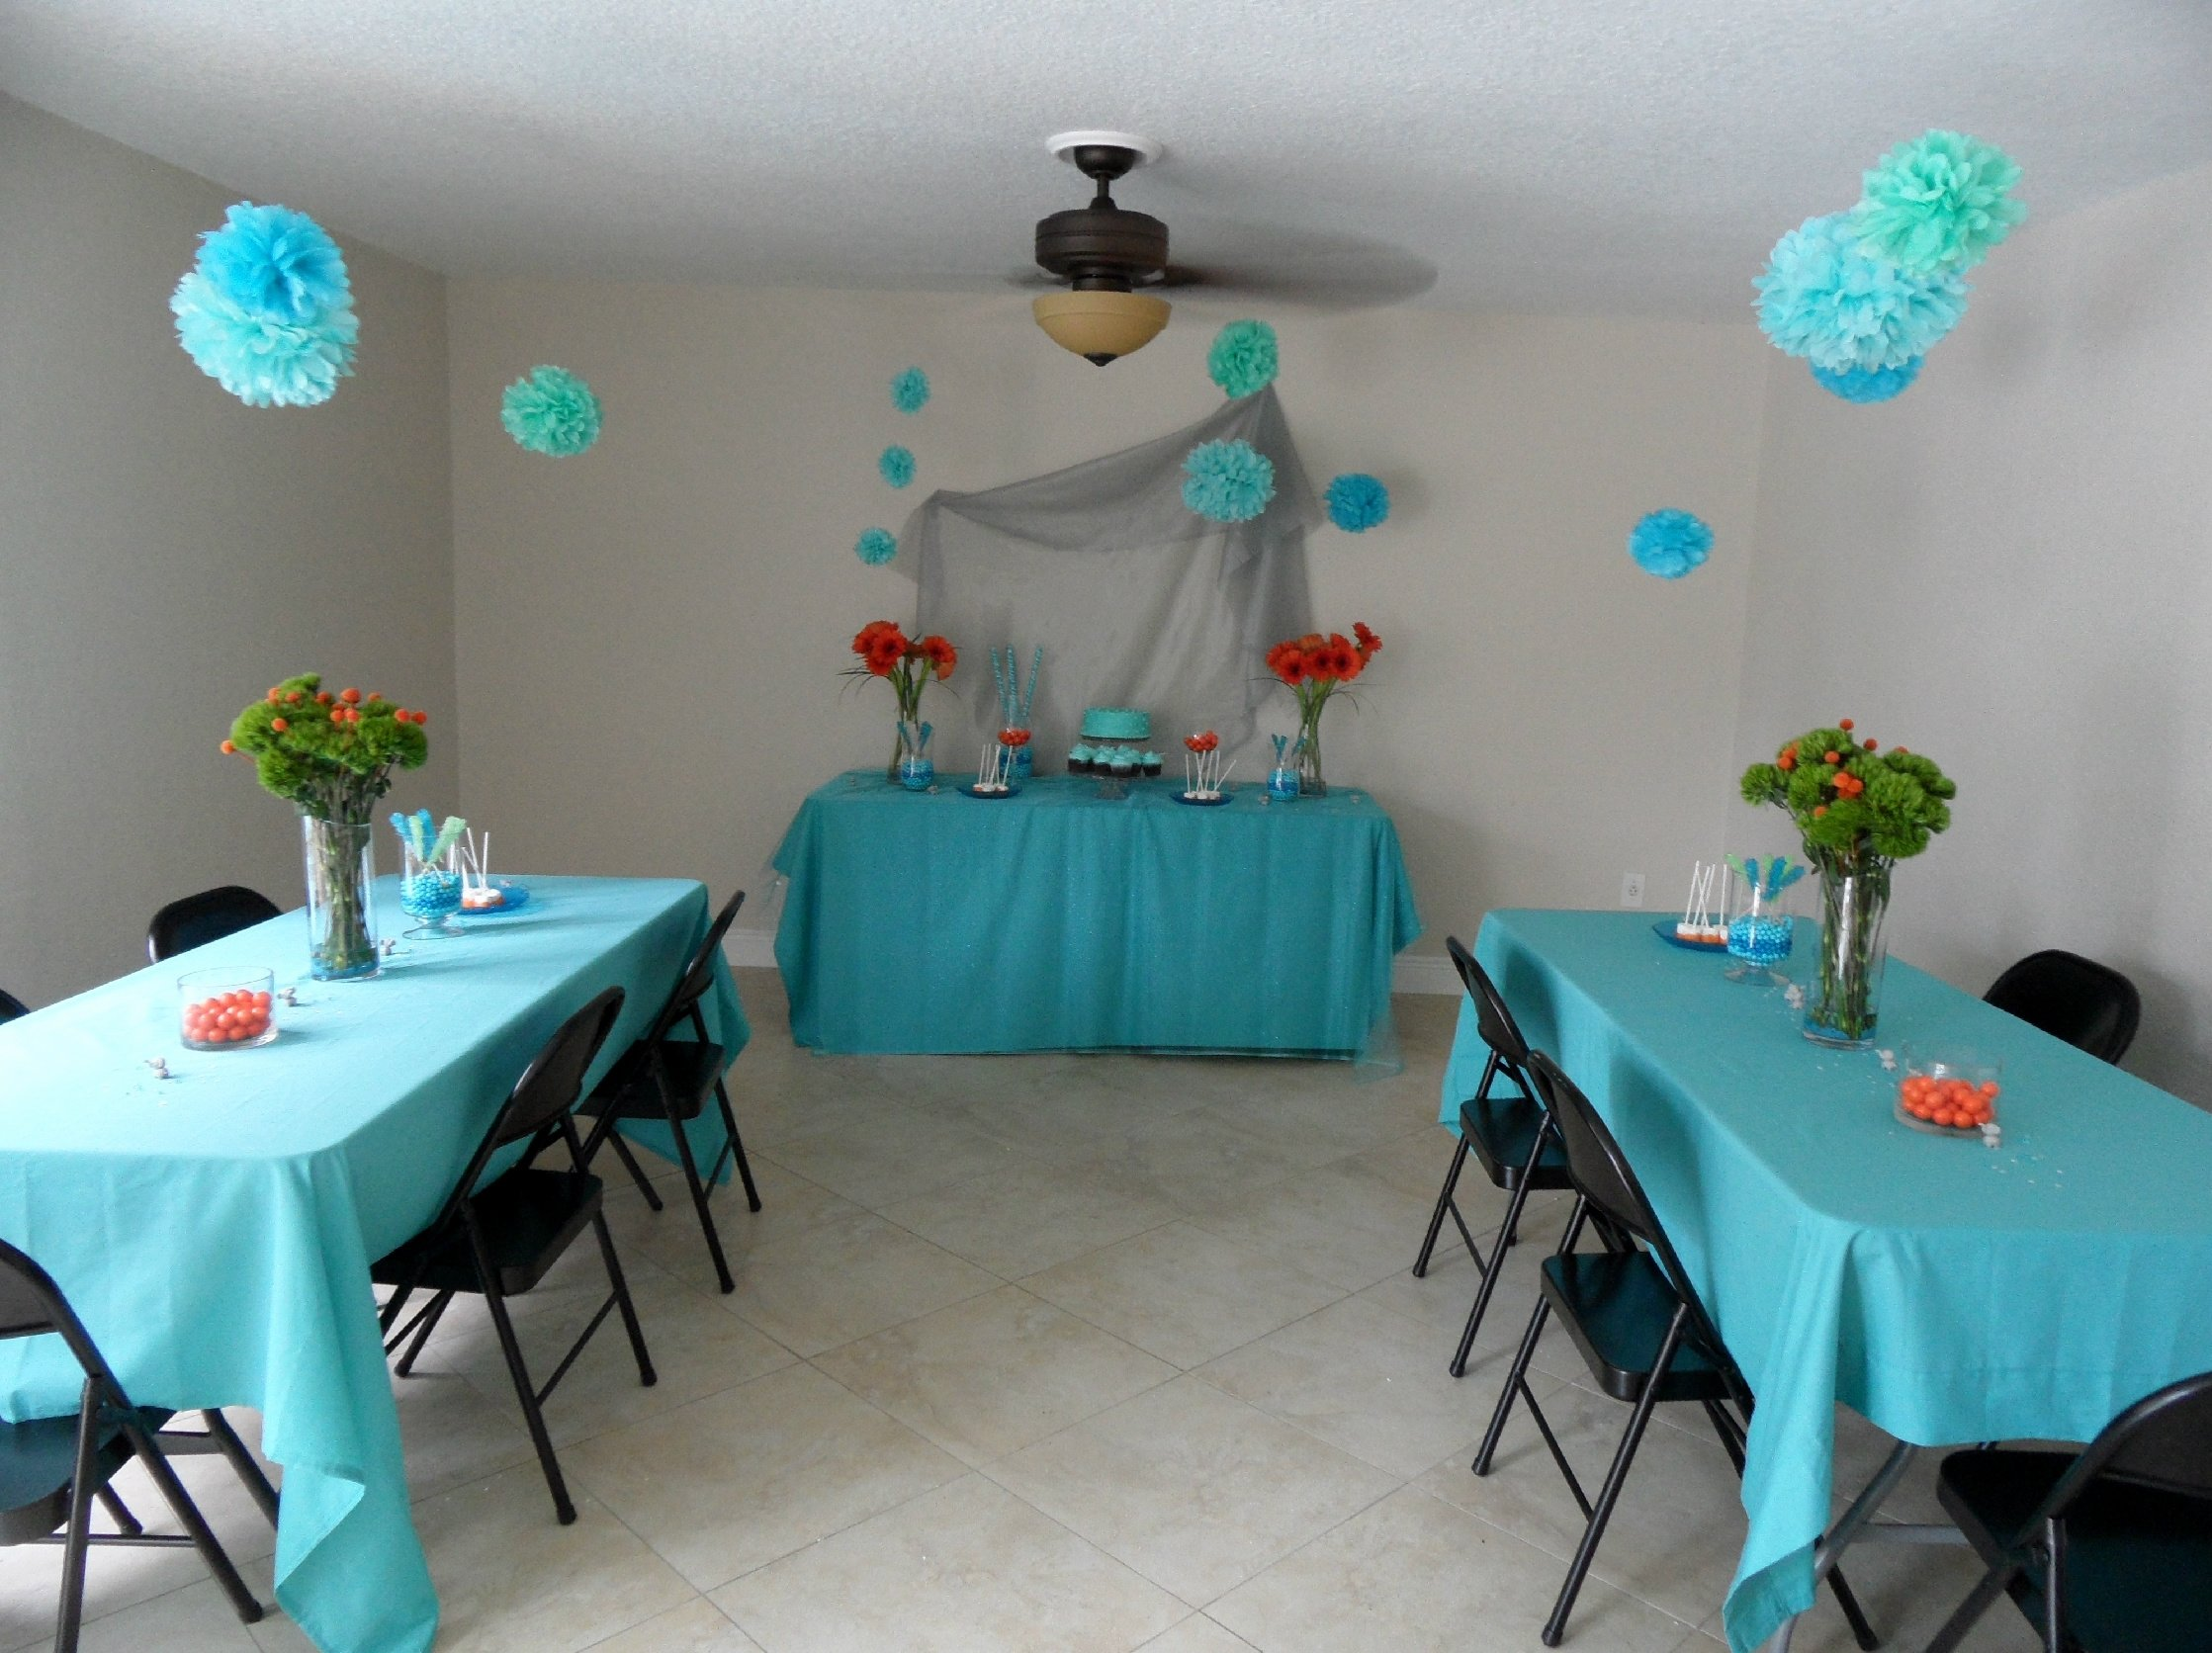 10 Amazing Baby Shower Ideas For Boy baby shower decoration ideas fory blue zebra decorations themes twin